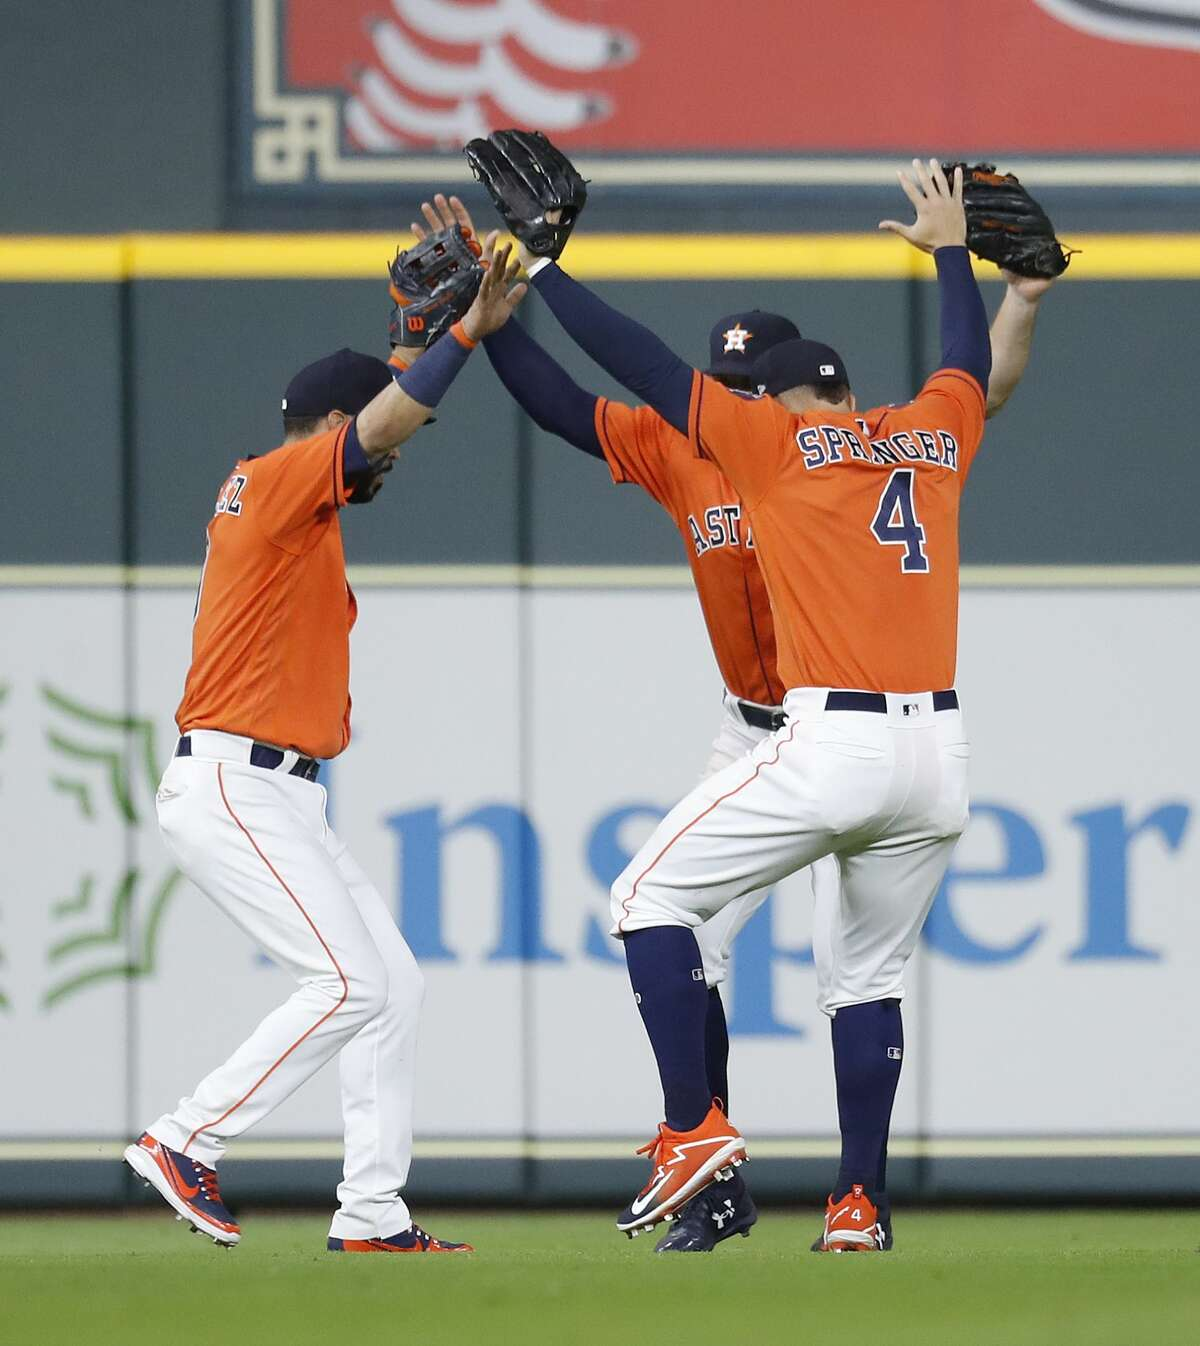 Houston Astros outfielders celebrate the Astros 3-2 win over the Texas Rangers after an MLB game at Minute Maid Park, Friday, April 13, 2018, in Houston. ( Karen Warren / Houston Chronicle )